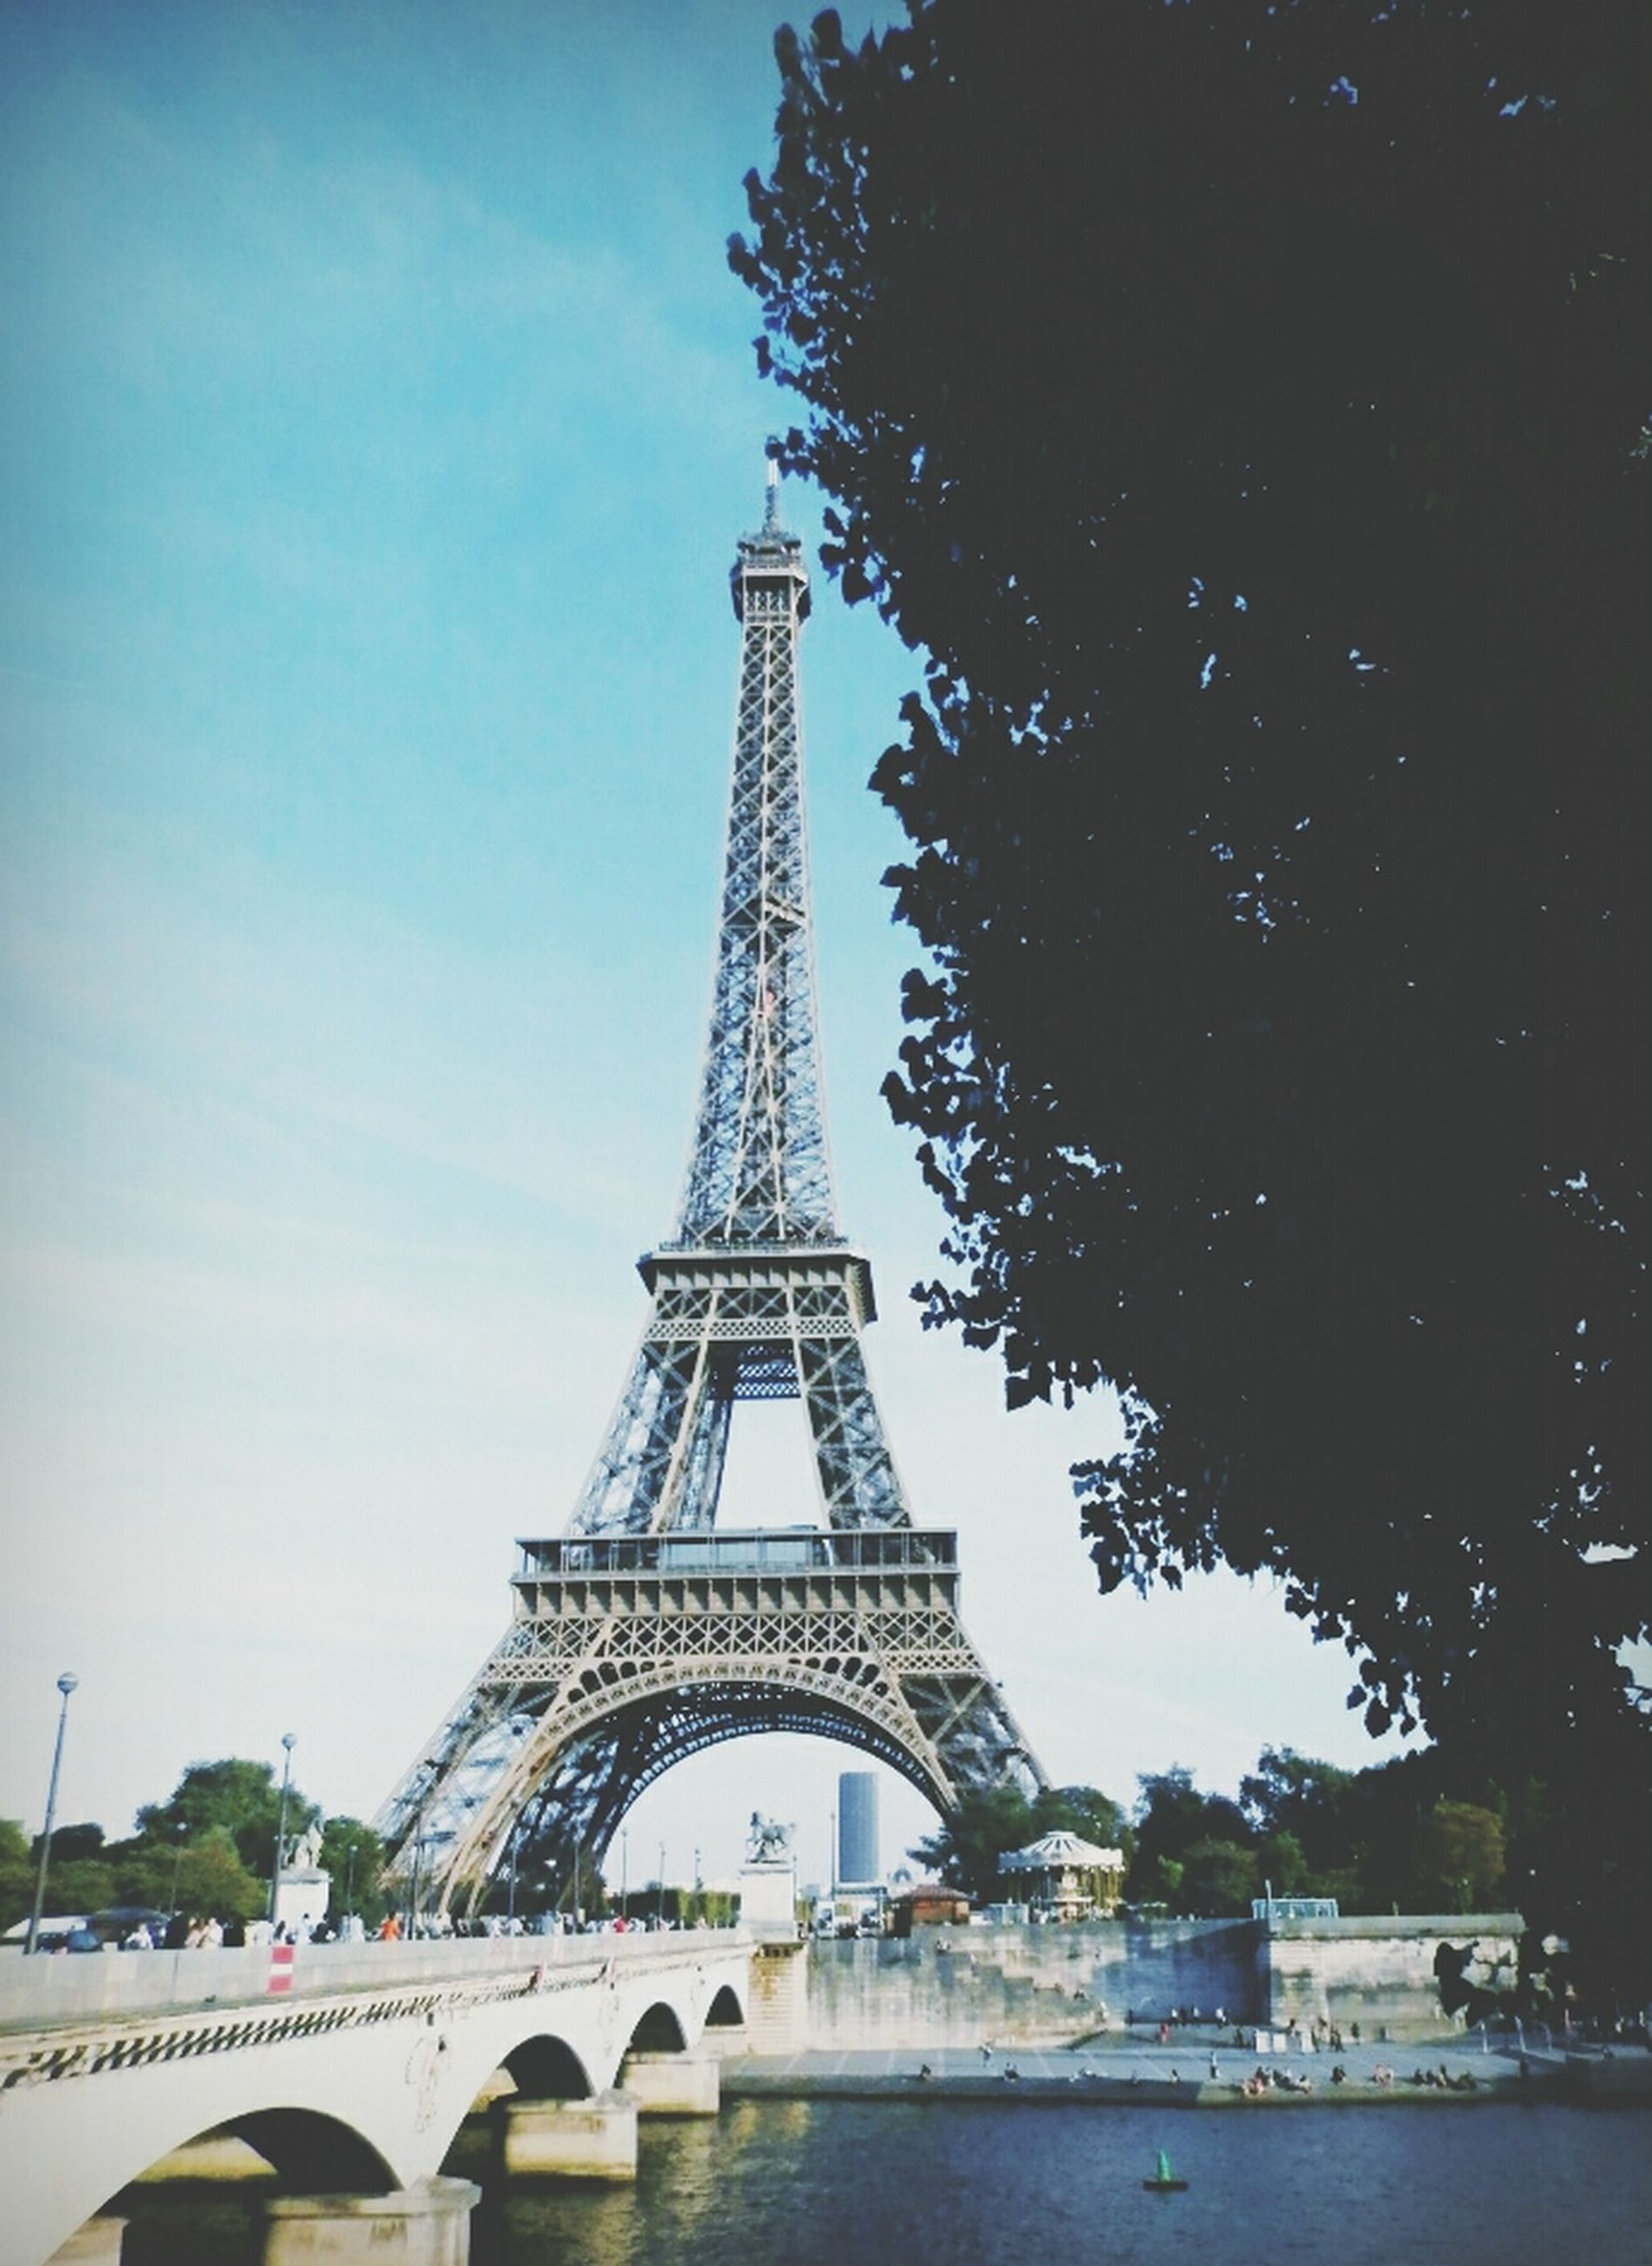 architecture, built structure, eiffel tower, famous place, travel destinations, sky, tower, transportation, international landmark, bridge - man made structure, connection, travel, capital cities, tourism, engineering, tall - high, metal, tree, culture, city